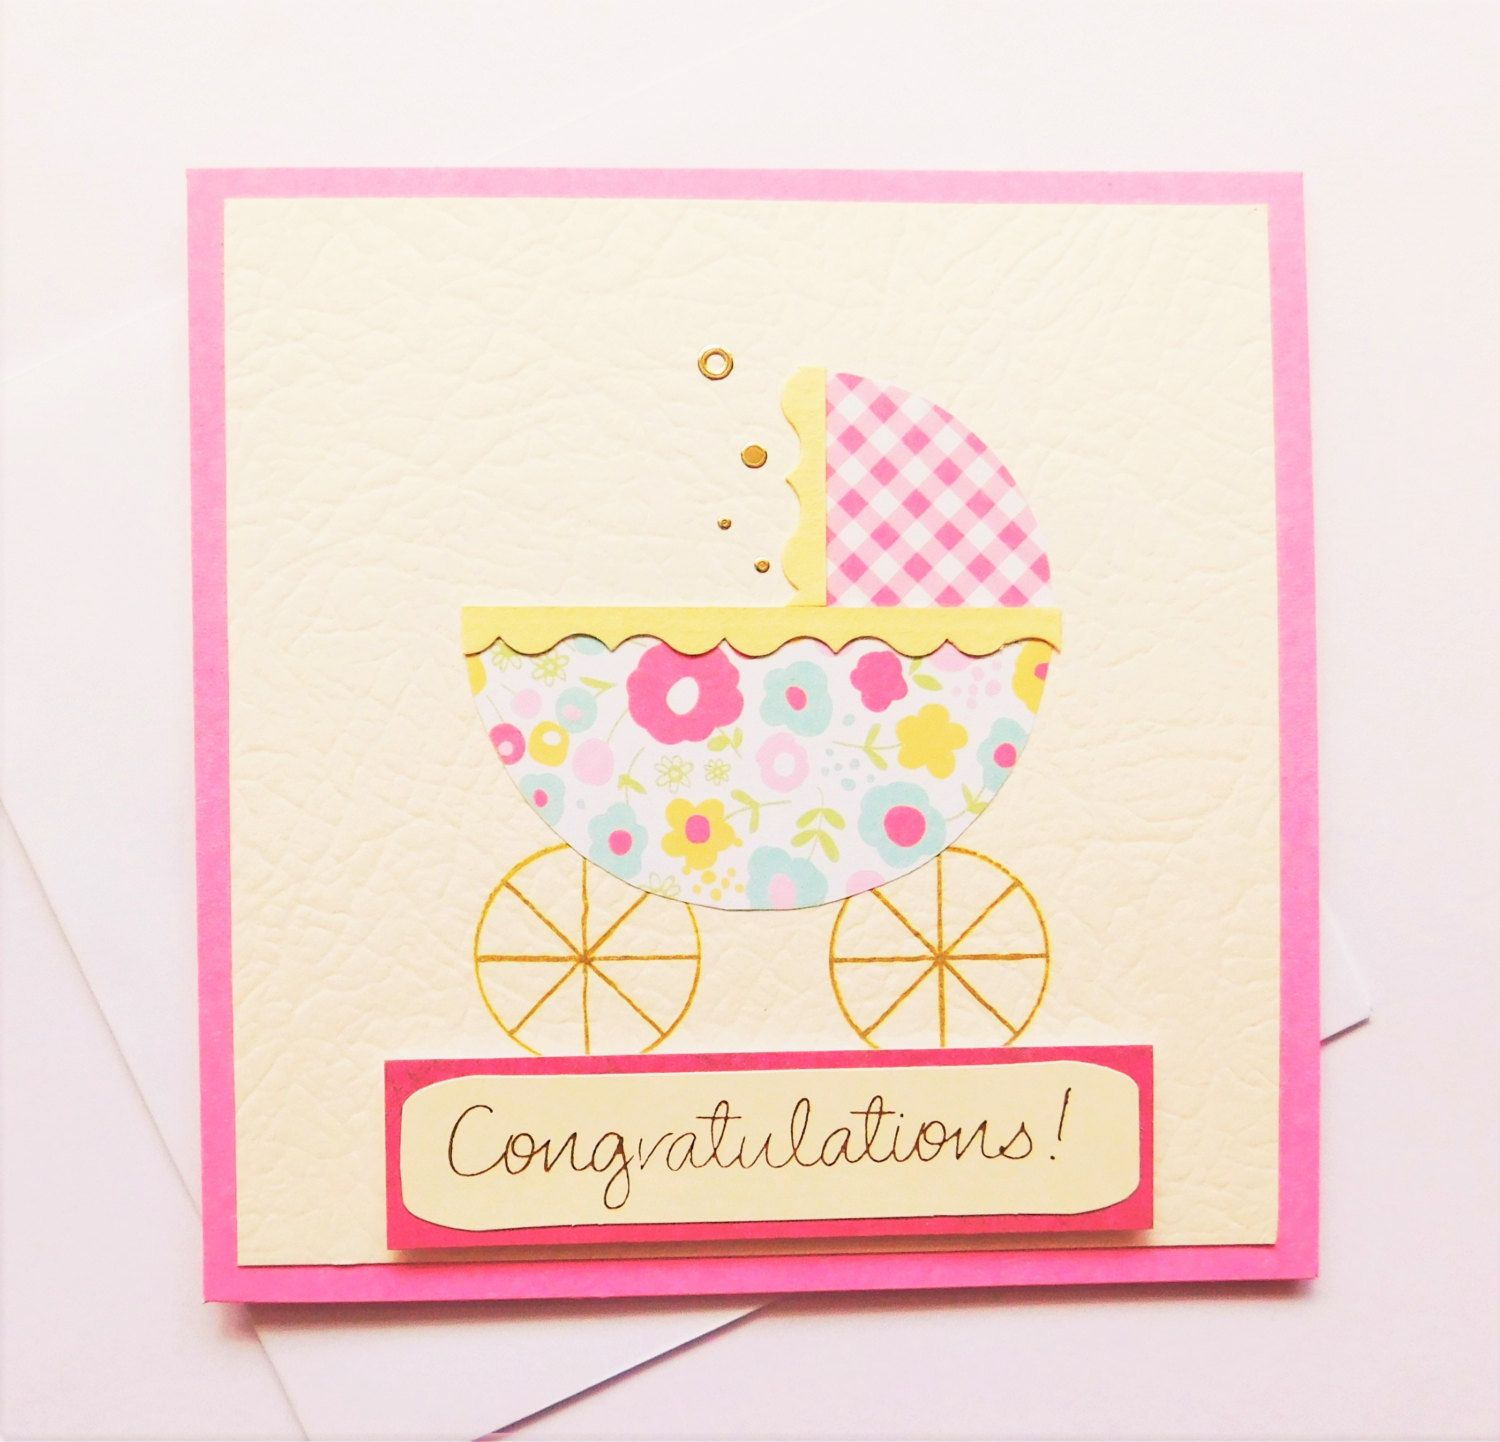 new baby congratulations card handmade baby girl welcome new arrival congratulations baby shower card cute new born